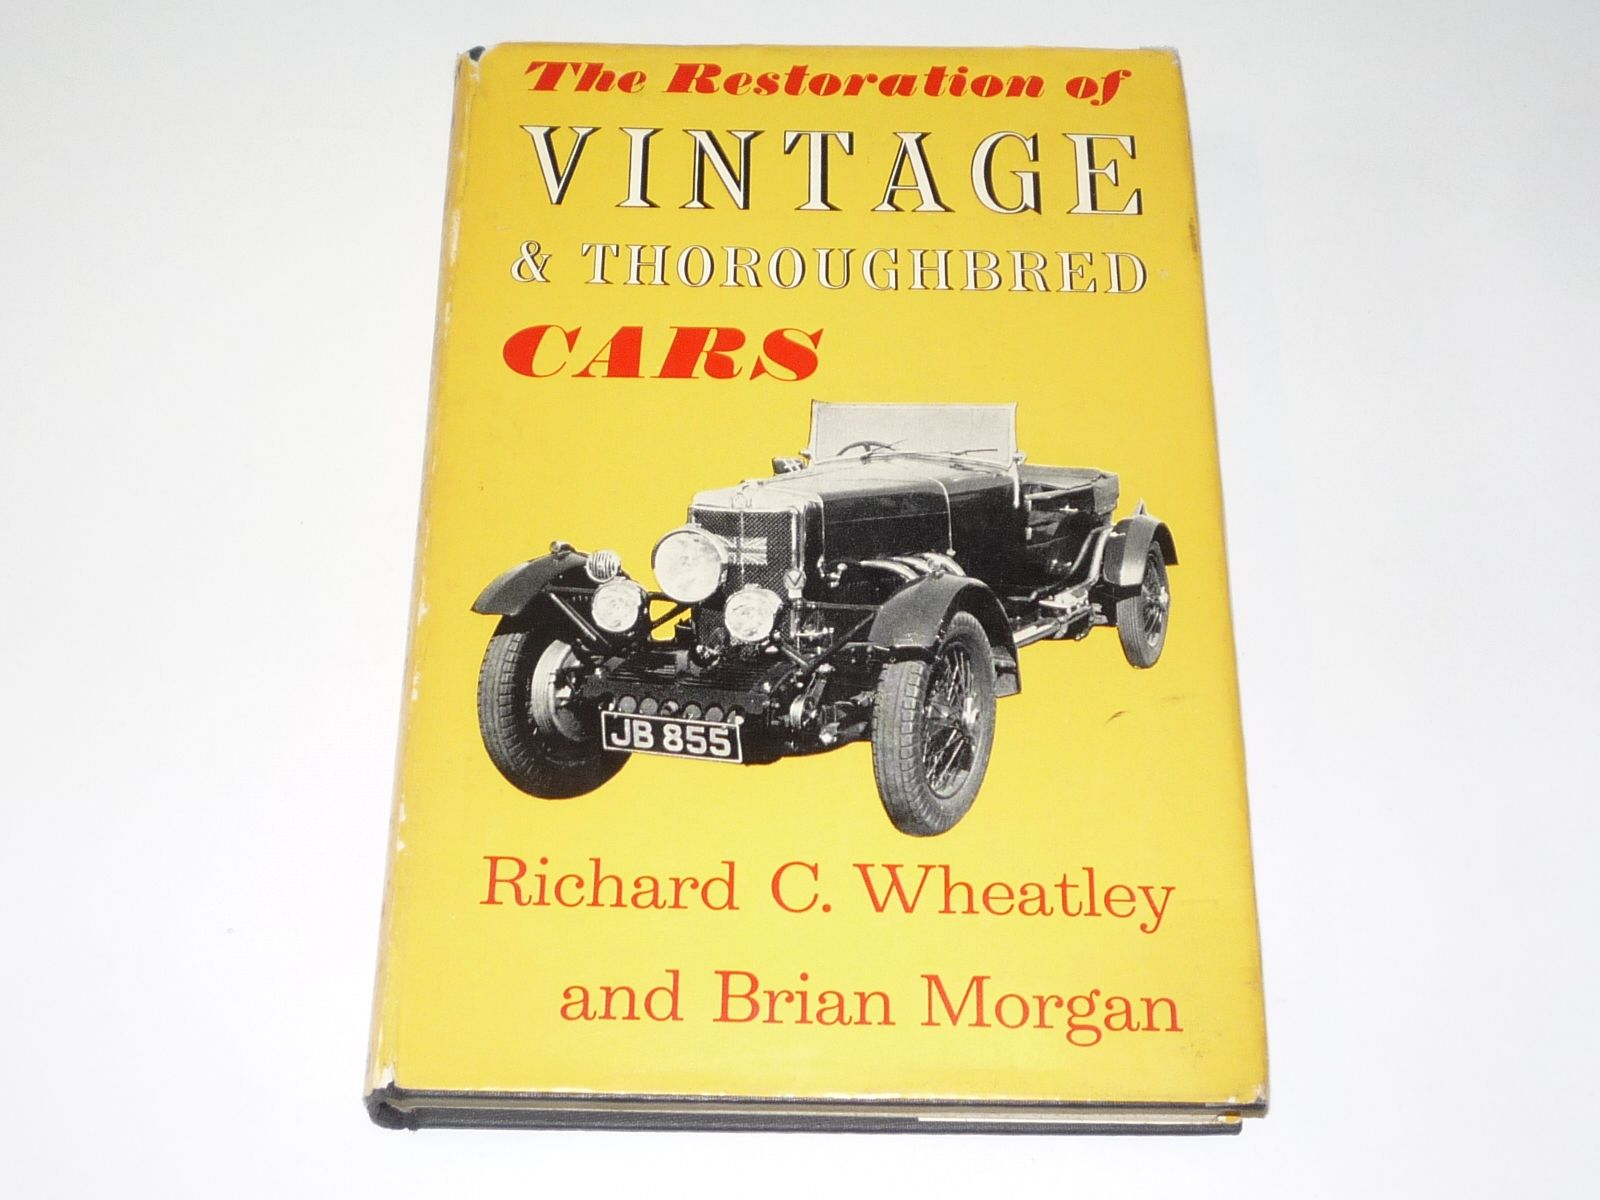 Restoration of vintage and thoroughbred cars the wheatley morgan 1959